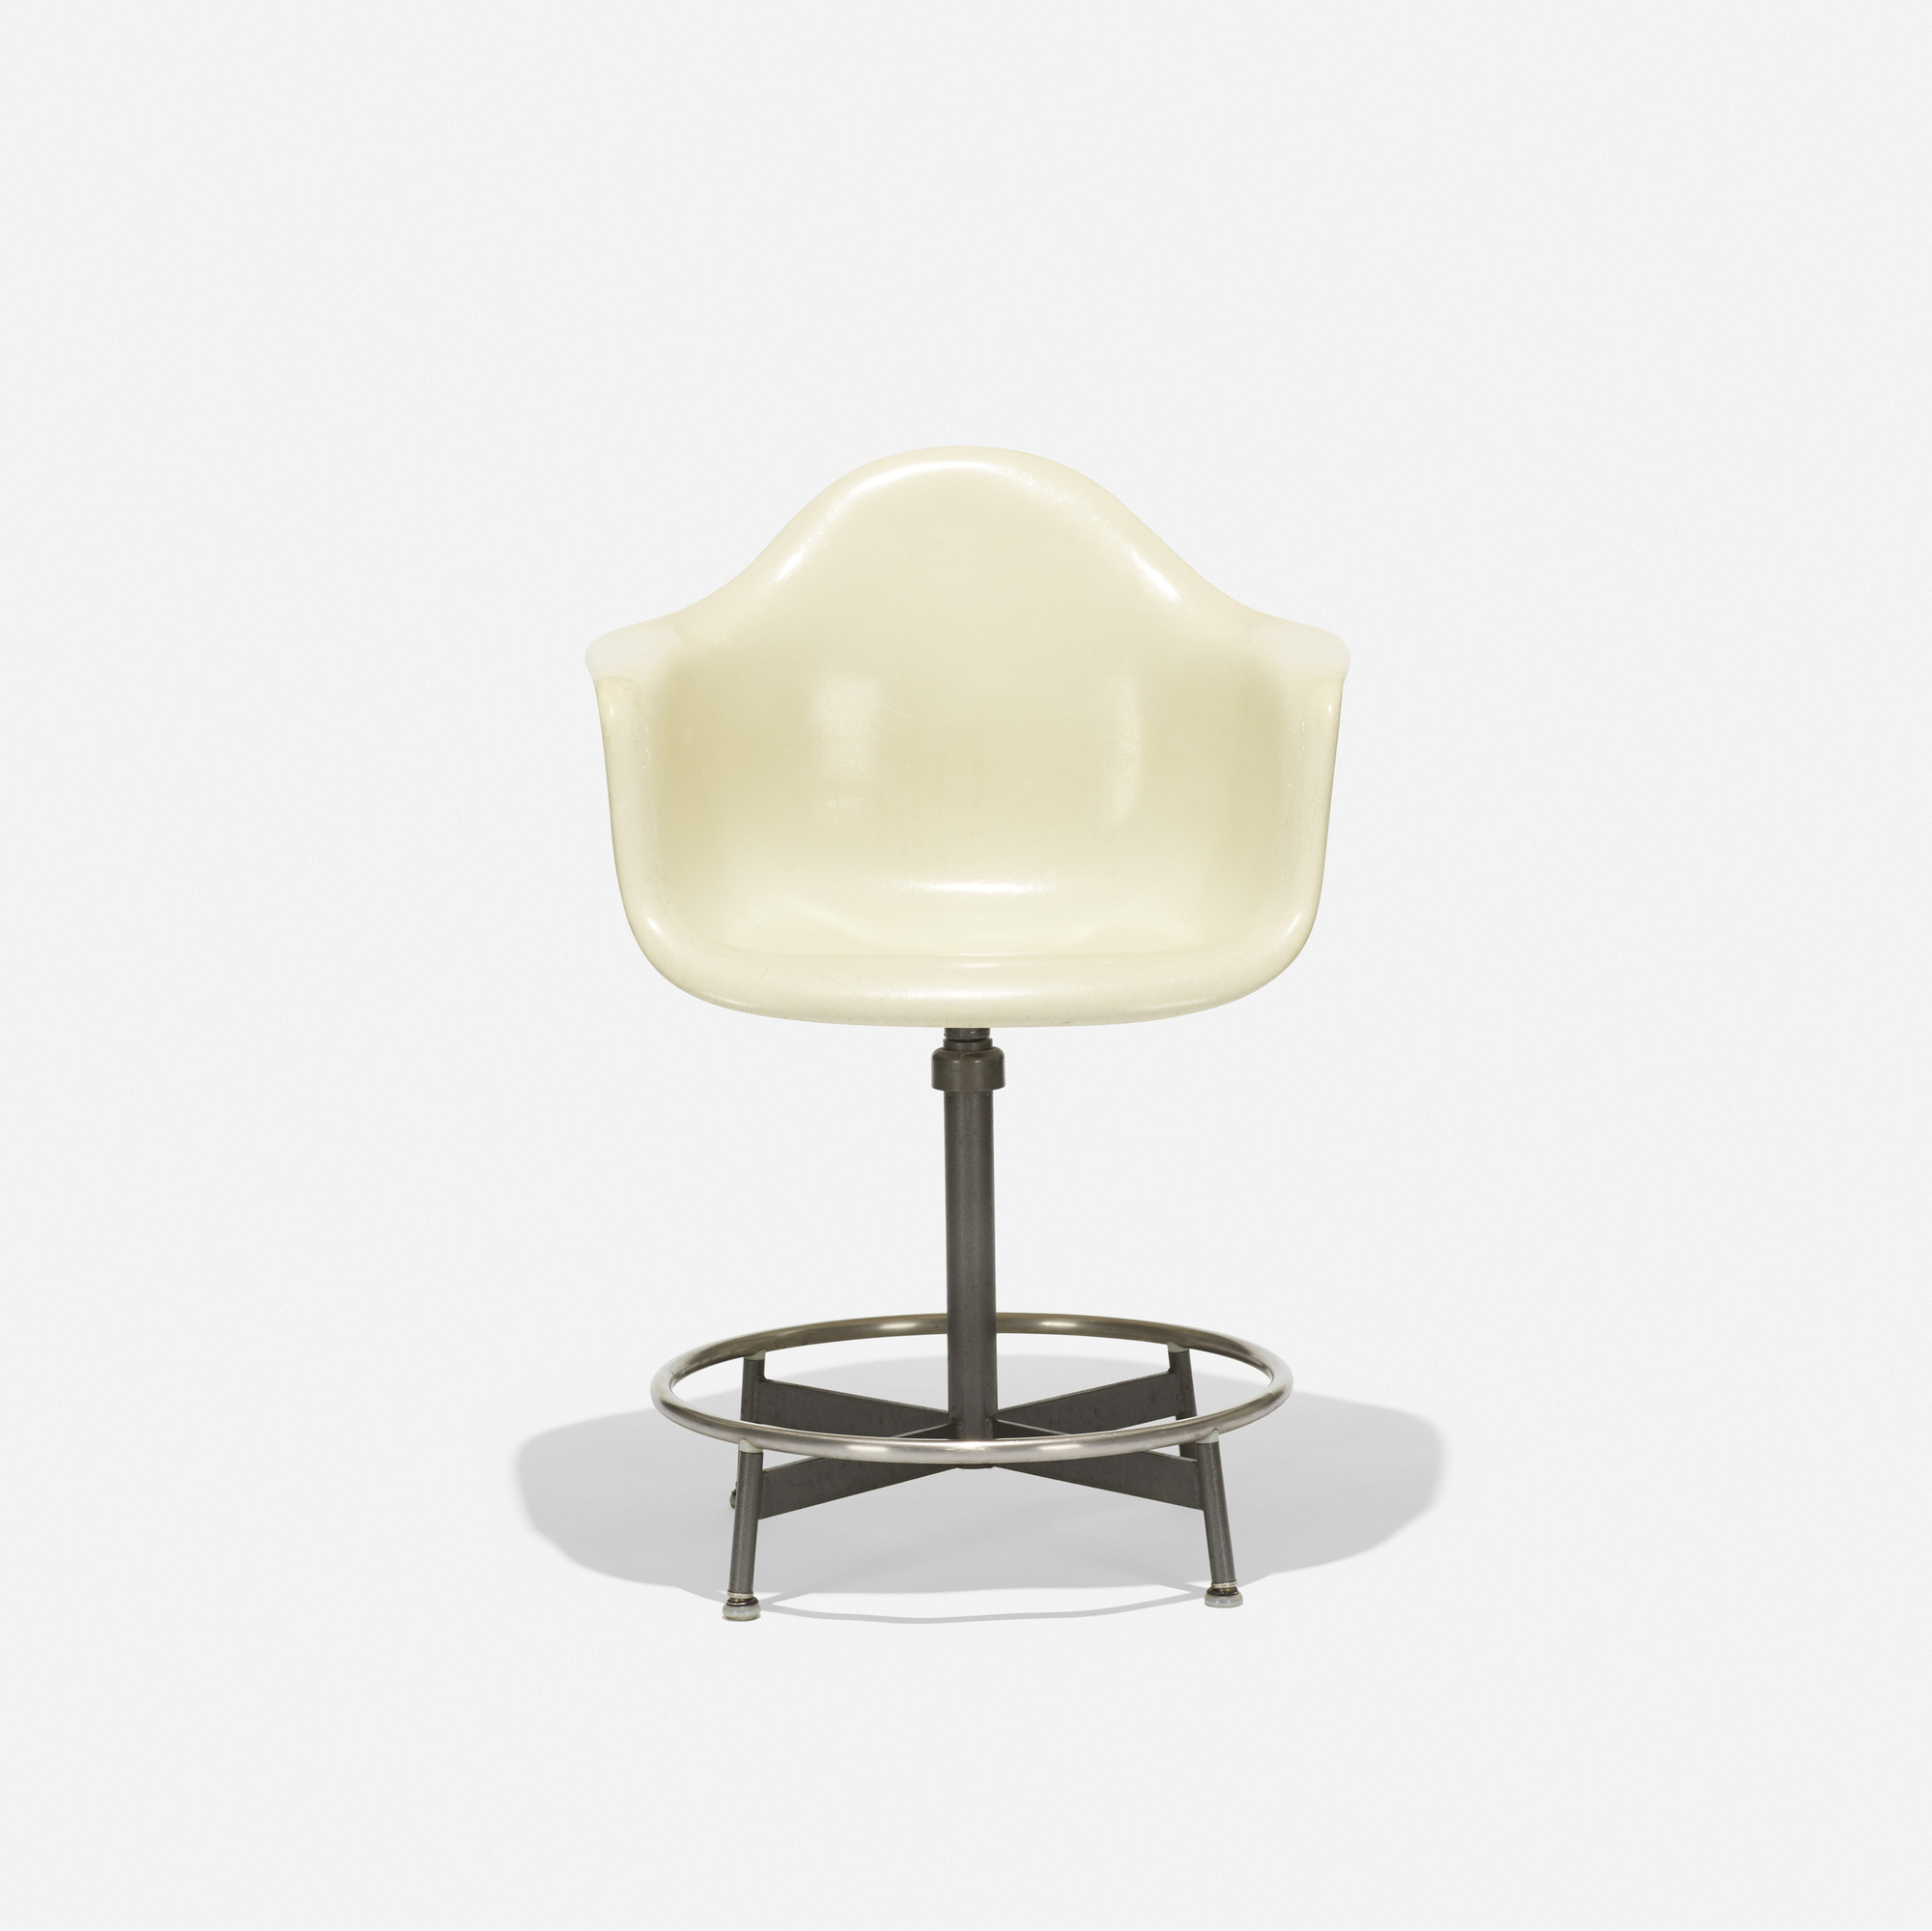 126: Charles and Ray Eames / Drafting armchair (1 of 2)